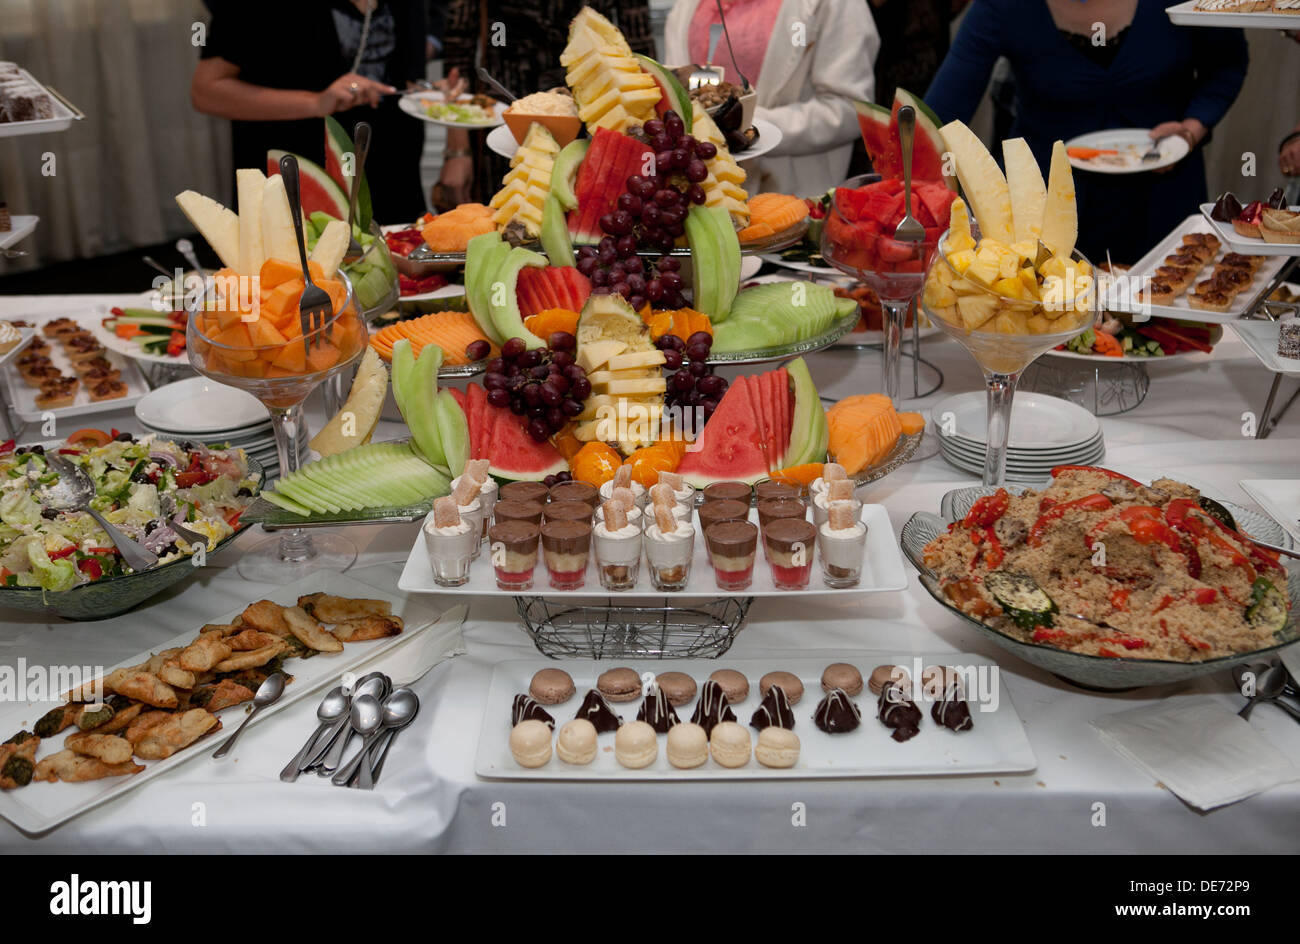 buffet at an upmarket engagement party stock photo royalty free image 60392145 alamy. Black Bedroom Furniture Sets. Home Design Ideas